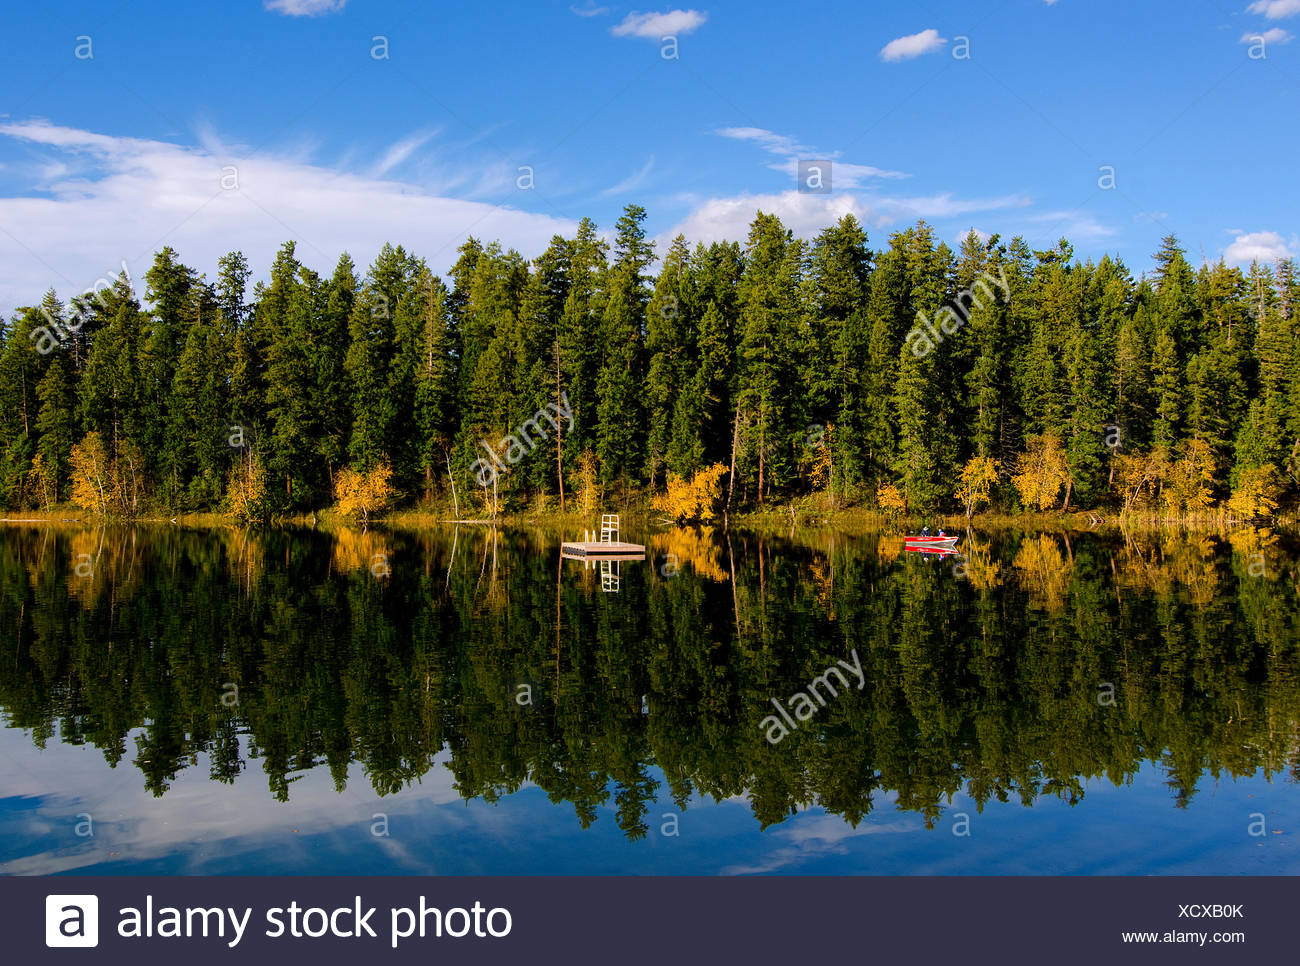 Boaters enjoy the early fall colours surrounding Gardom Lake, near Salmon Arm, in British Columbia's Shuswap Region, Canada. - Stock Image